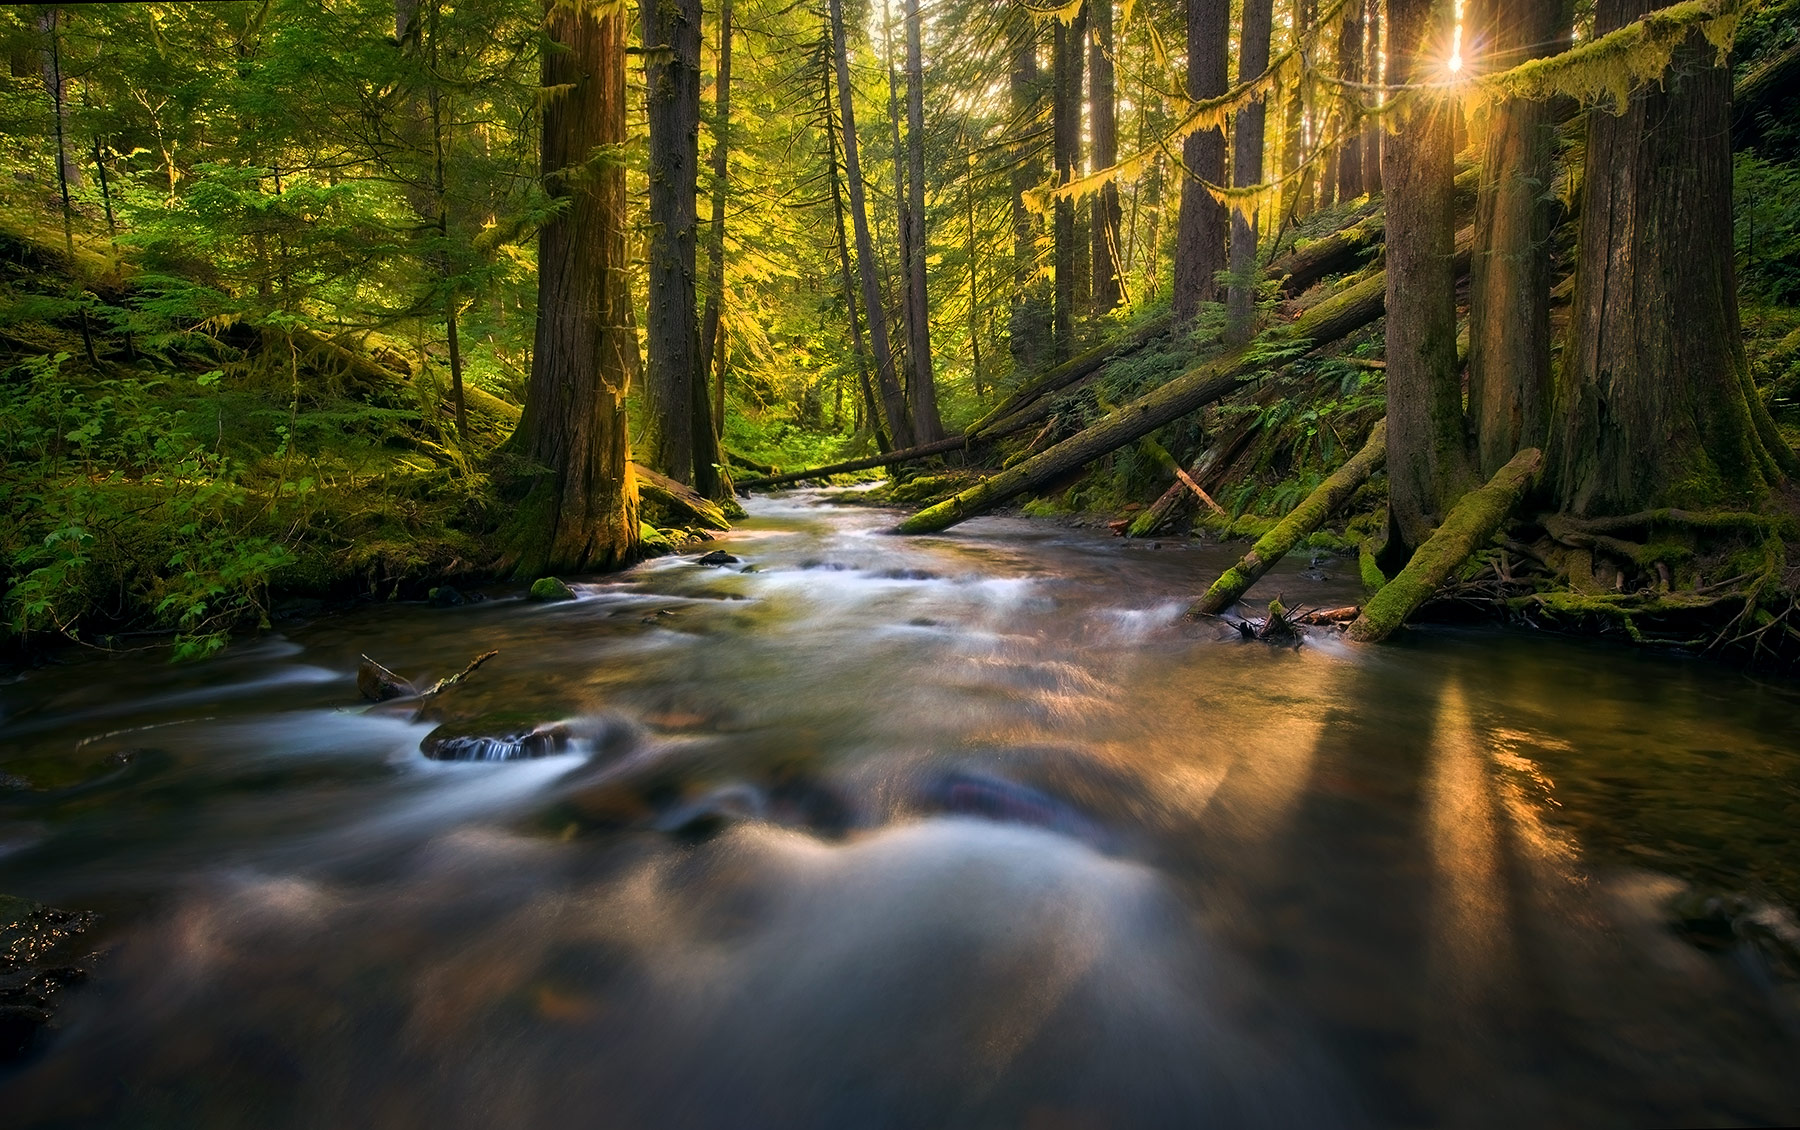 Washington, Gifford-Pinchot, Forest, Rain Forest, Sunbeam, photo